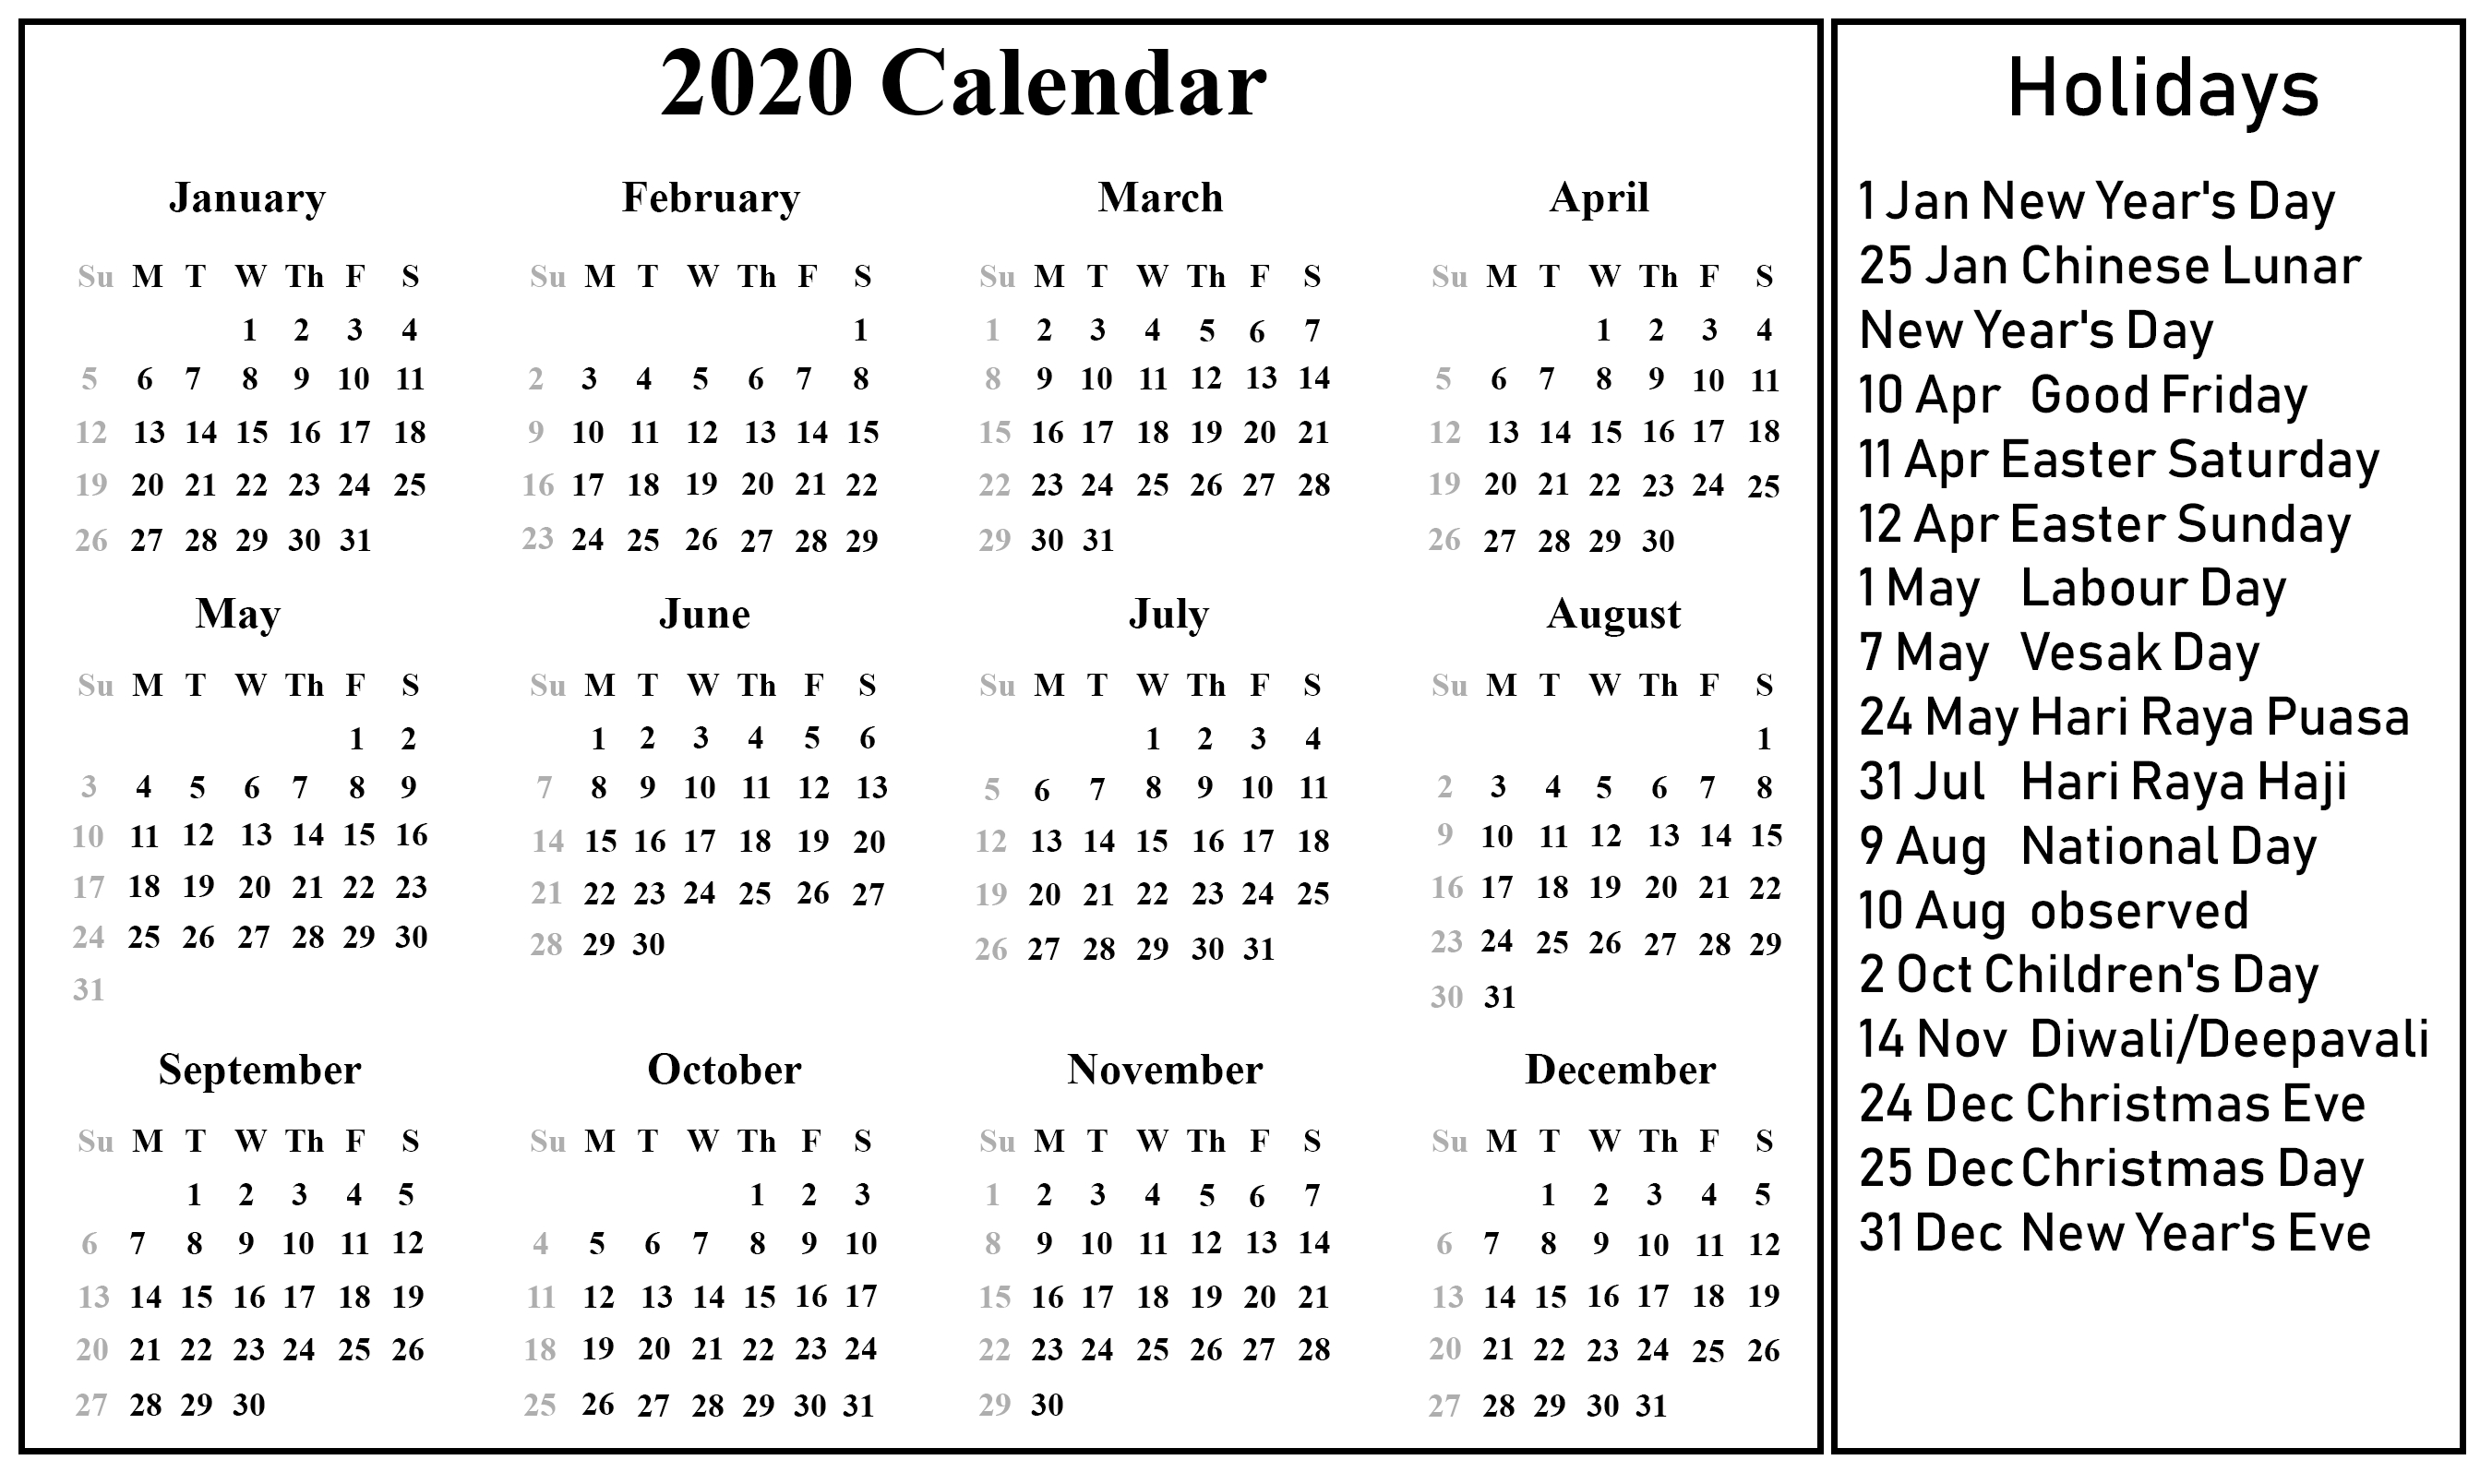 Free Printable Singapore Calendar 2020 With Holidays regarding National Days June 2020